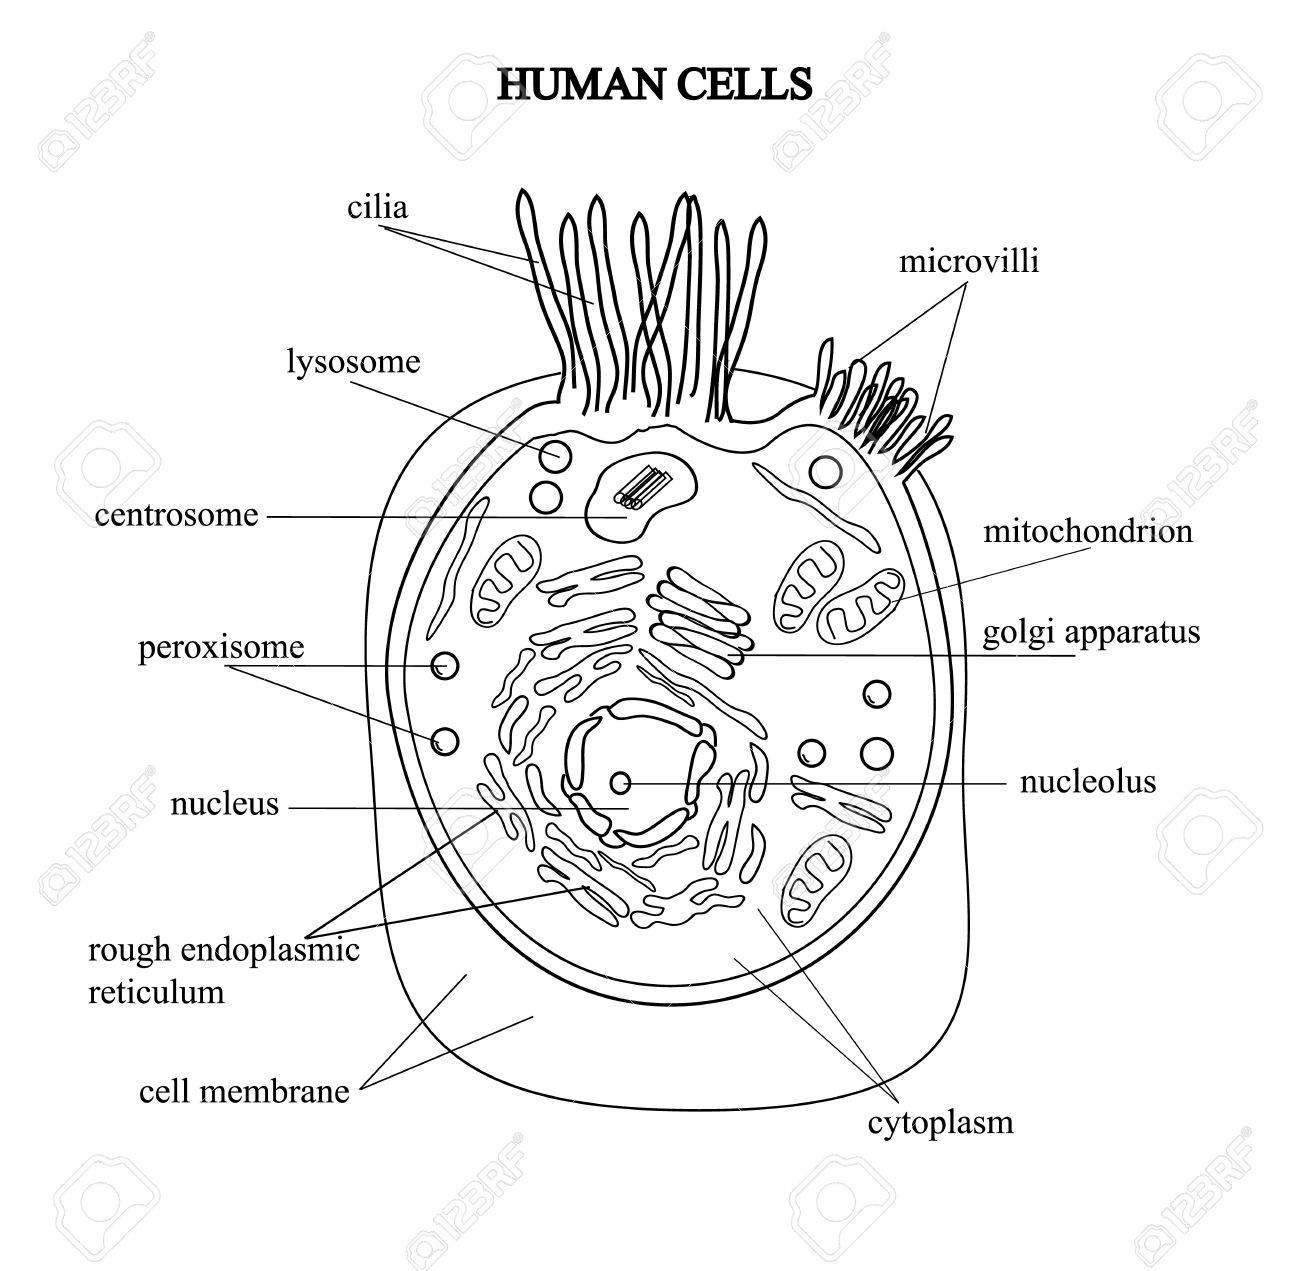 The Structure Of The Human Cells In A Graphic Image Cell Components